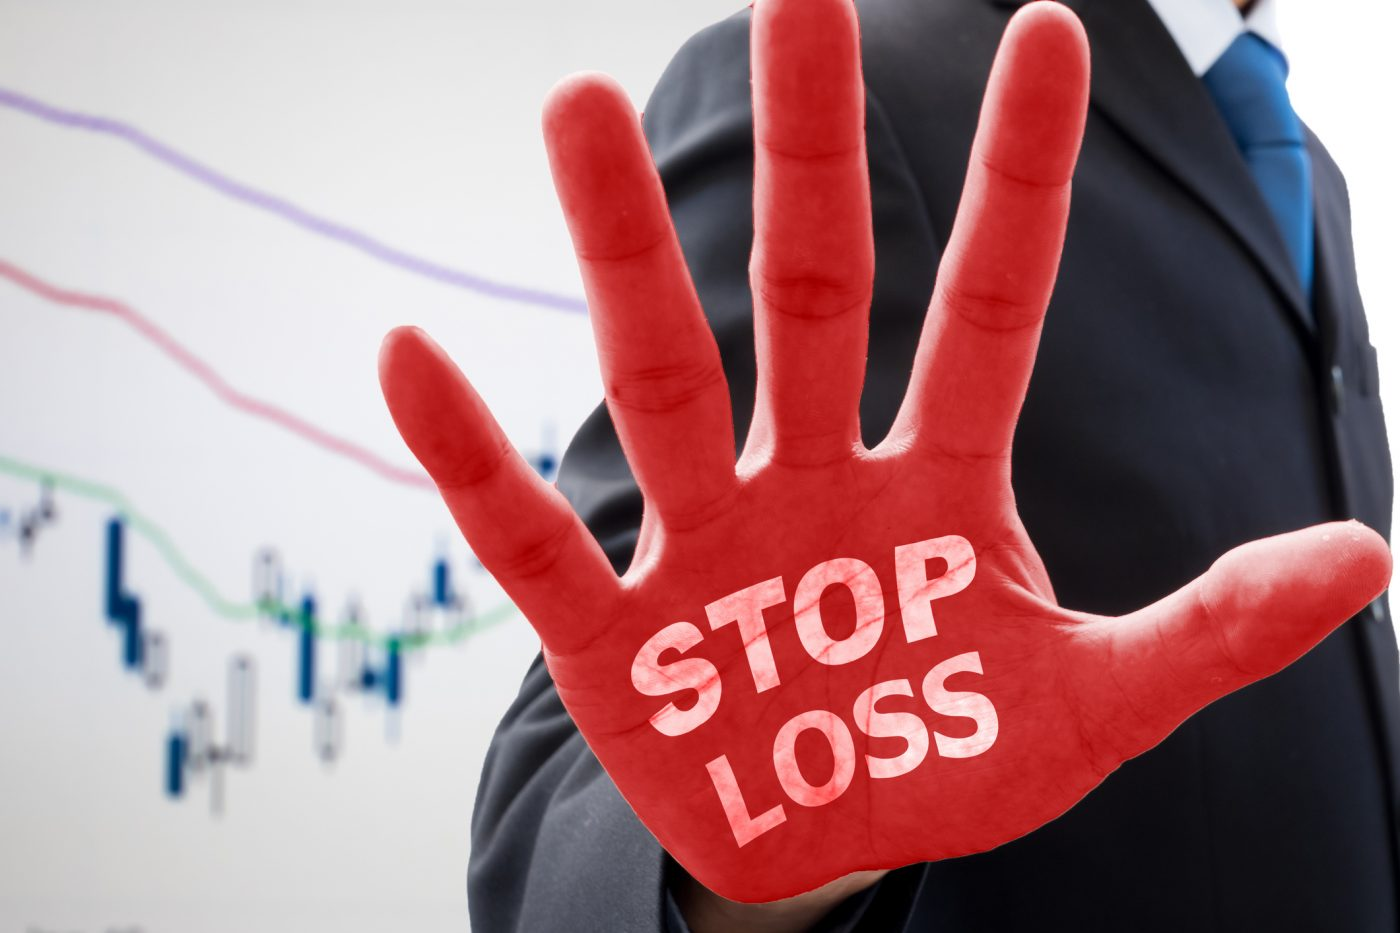 3 Important Stop Loss Strategies